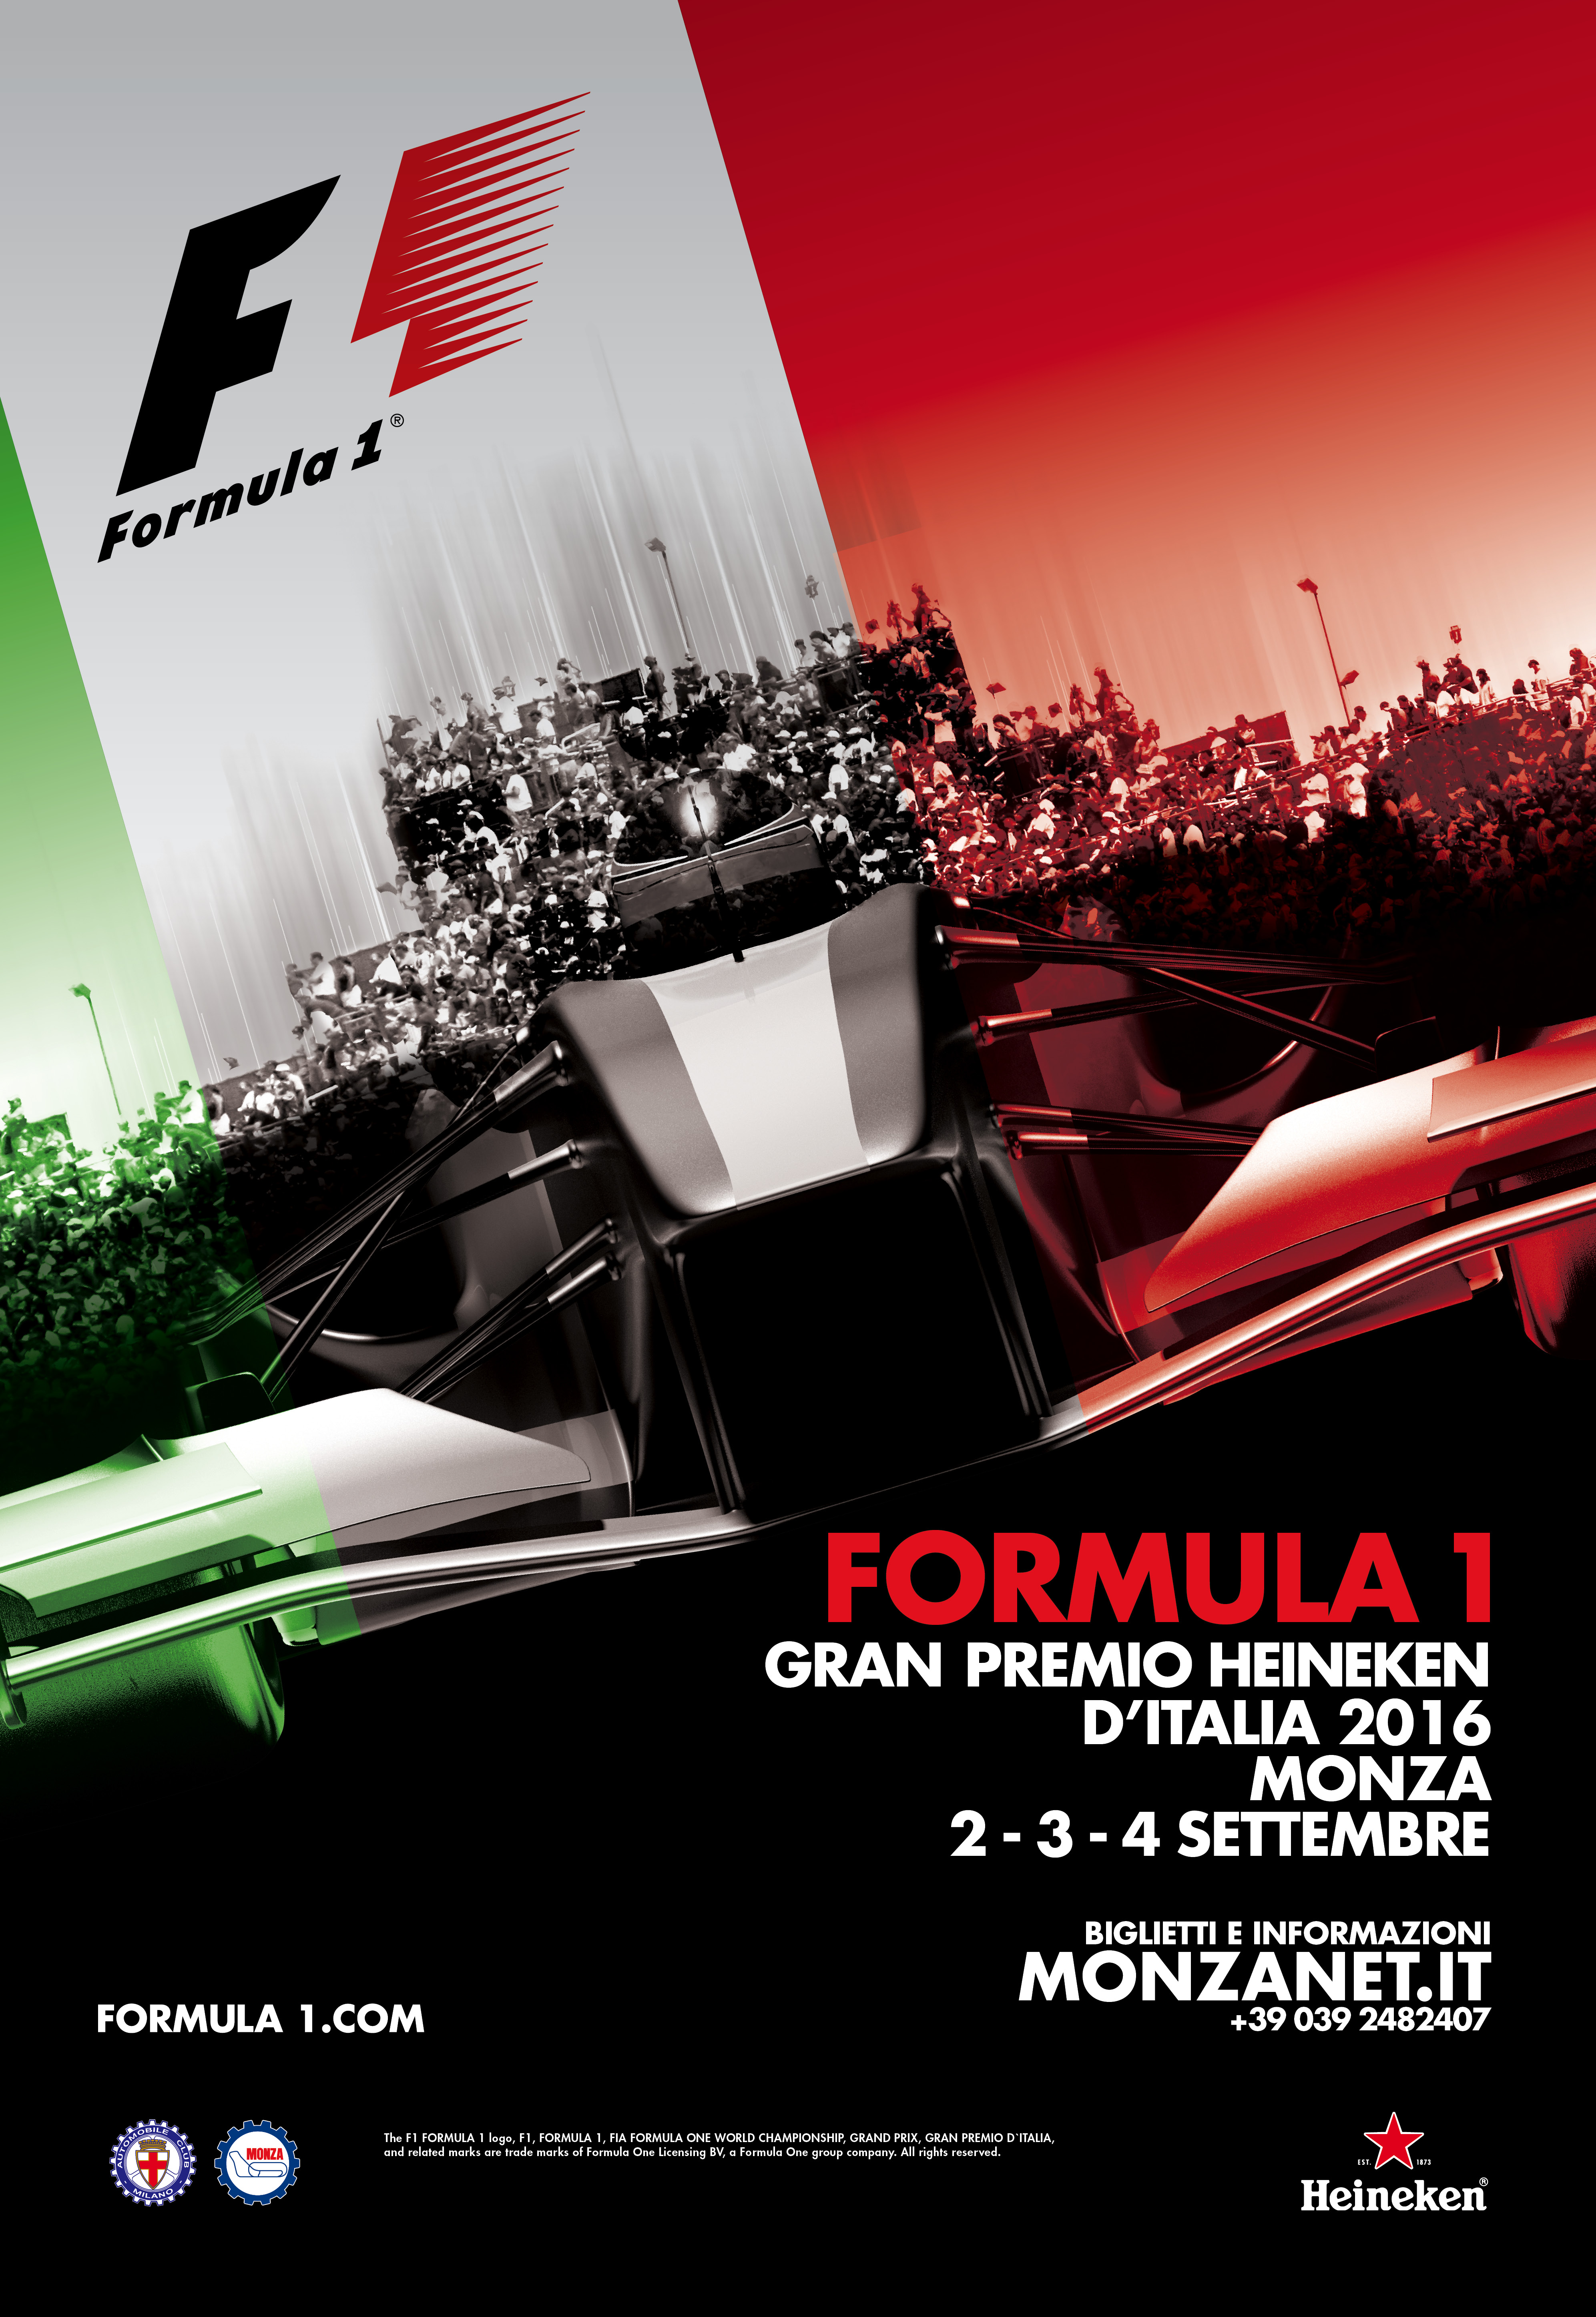 Formula 1 Heineken Gran Prix Of Italy 2016 Monza And Brianza Official Visitor Guide